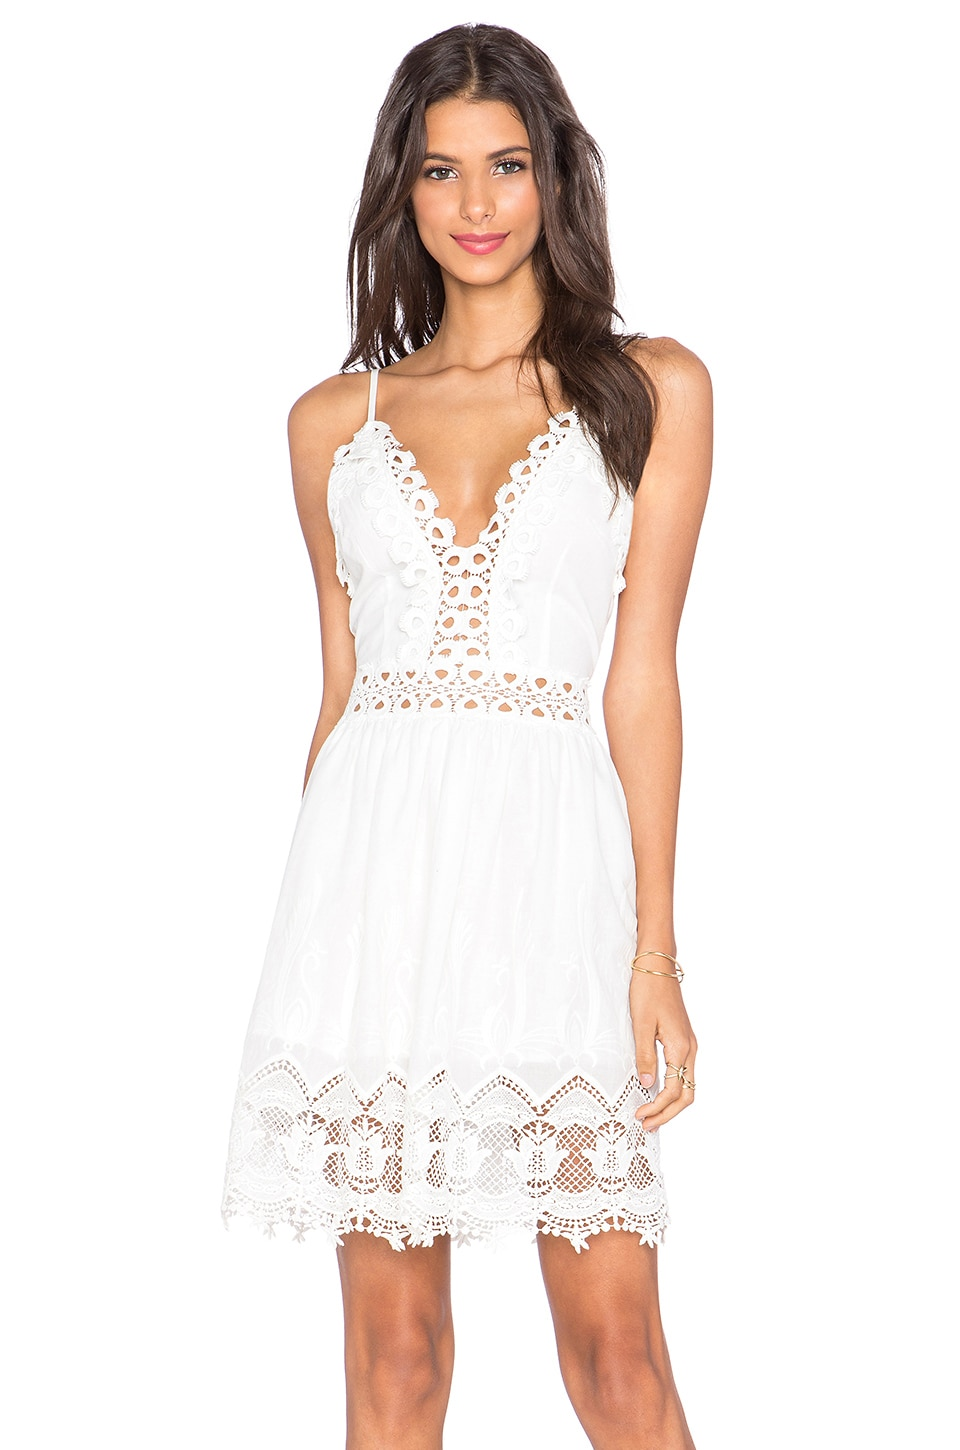 Toby Heart Ginger x Love Indie Daydreamer Crochet Mini Dress in White